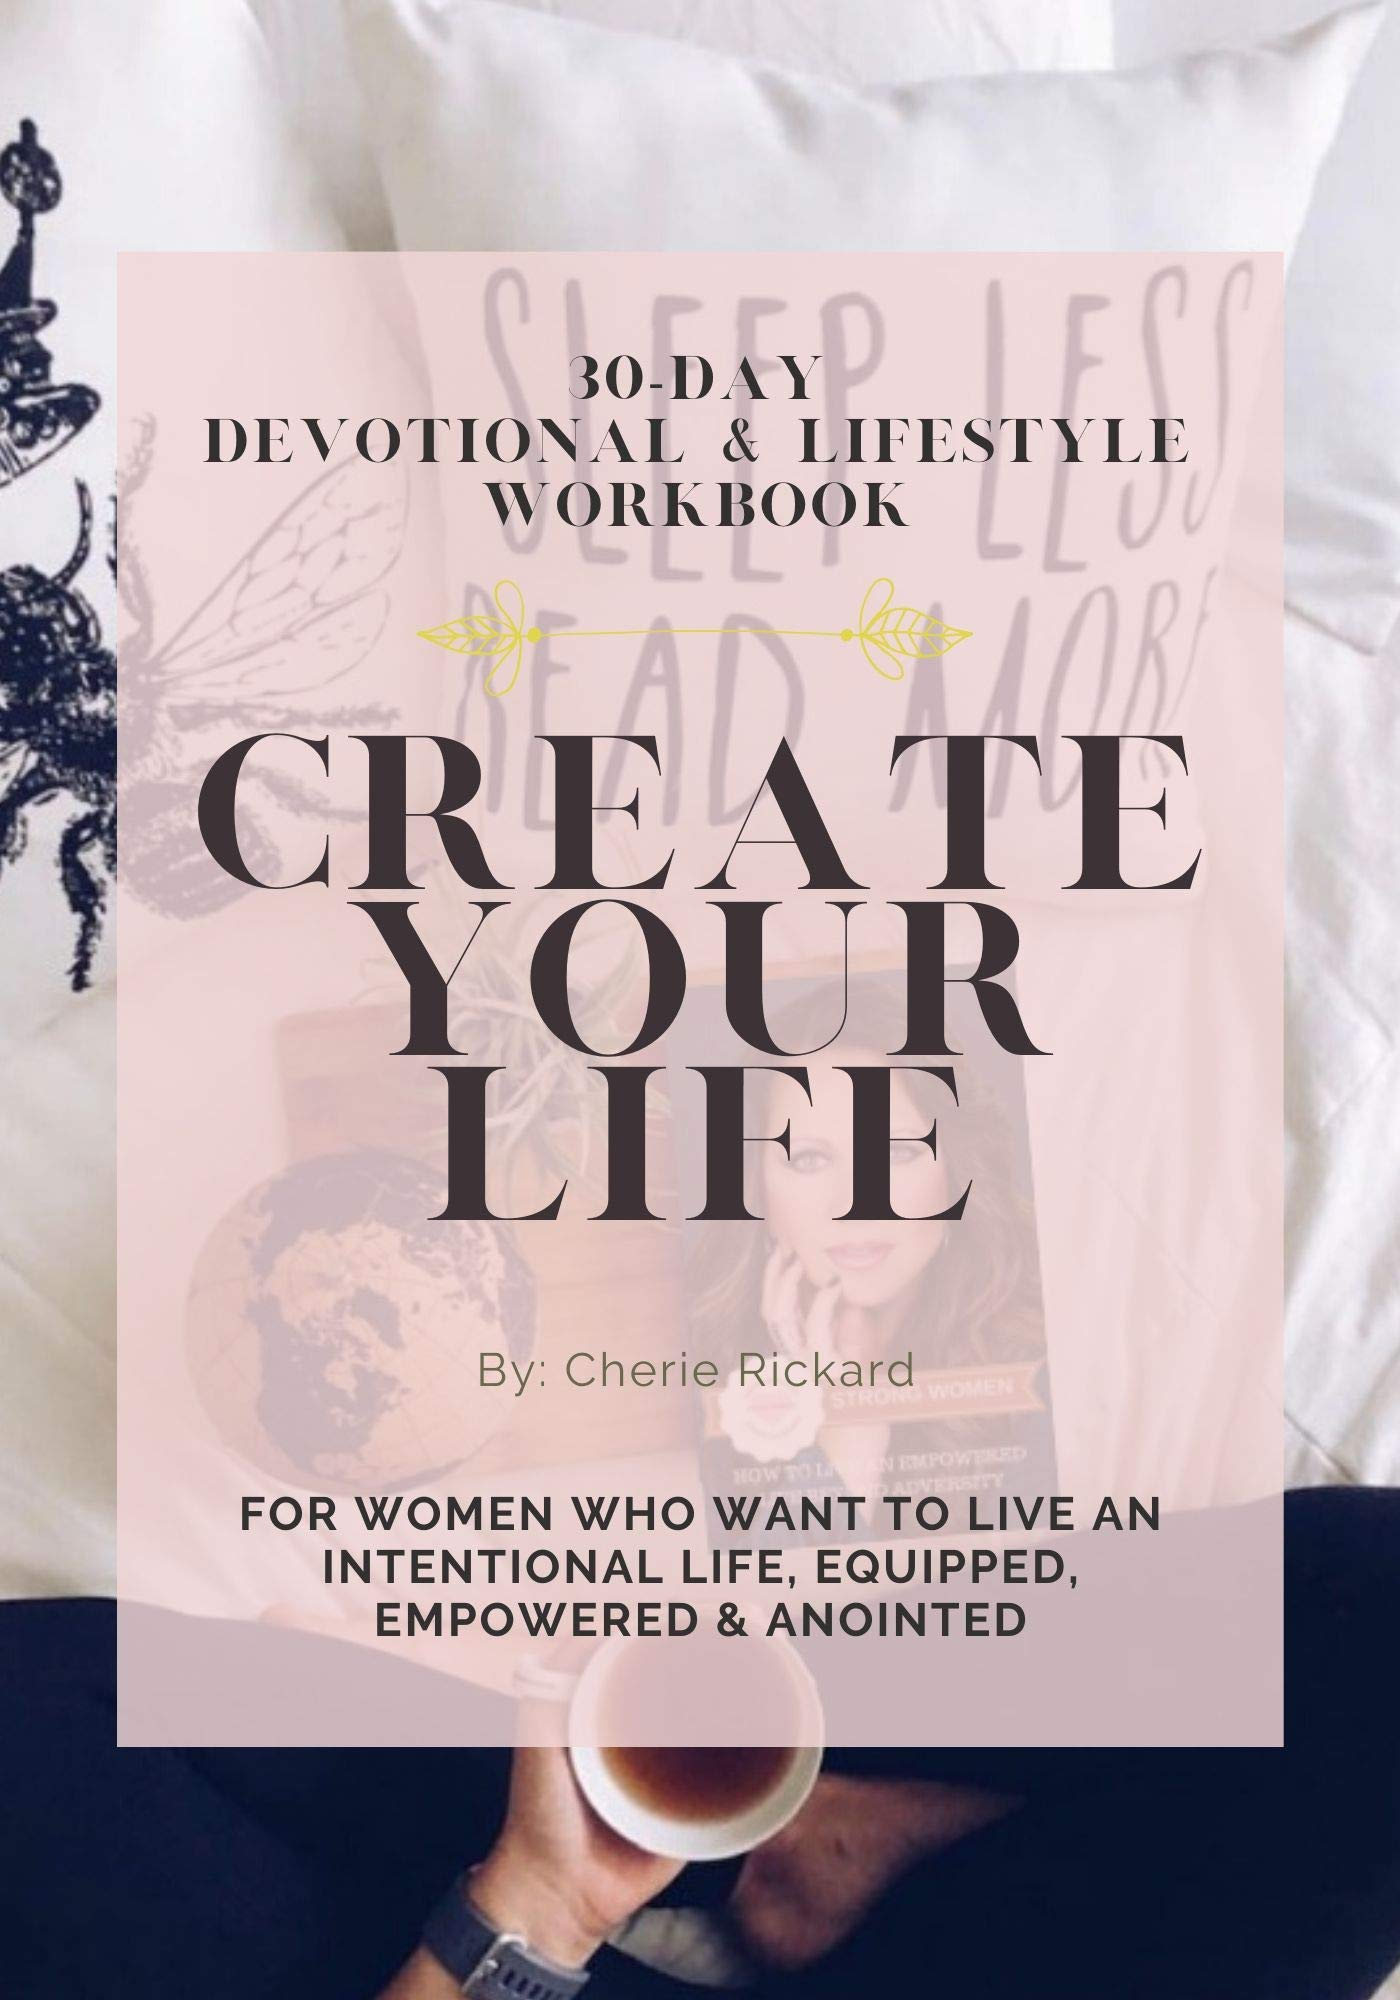 Create Your Life: 30-Day Devotional & Lifestyle Workbook For Women Who Want To Live An Intentional Life, Equipped, Empowered & Anointed